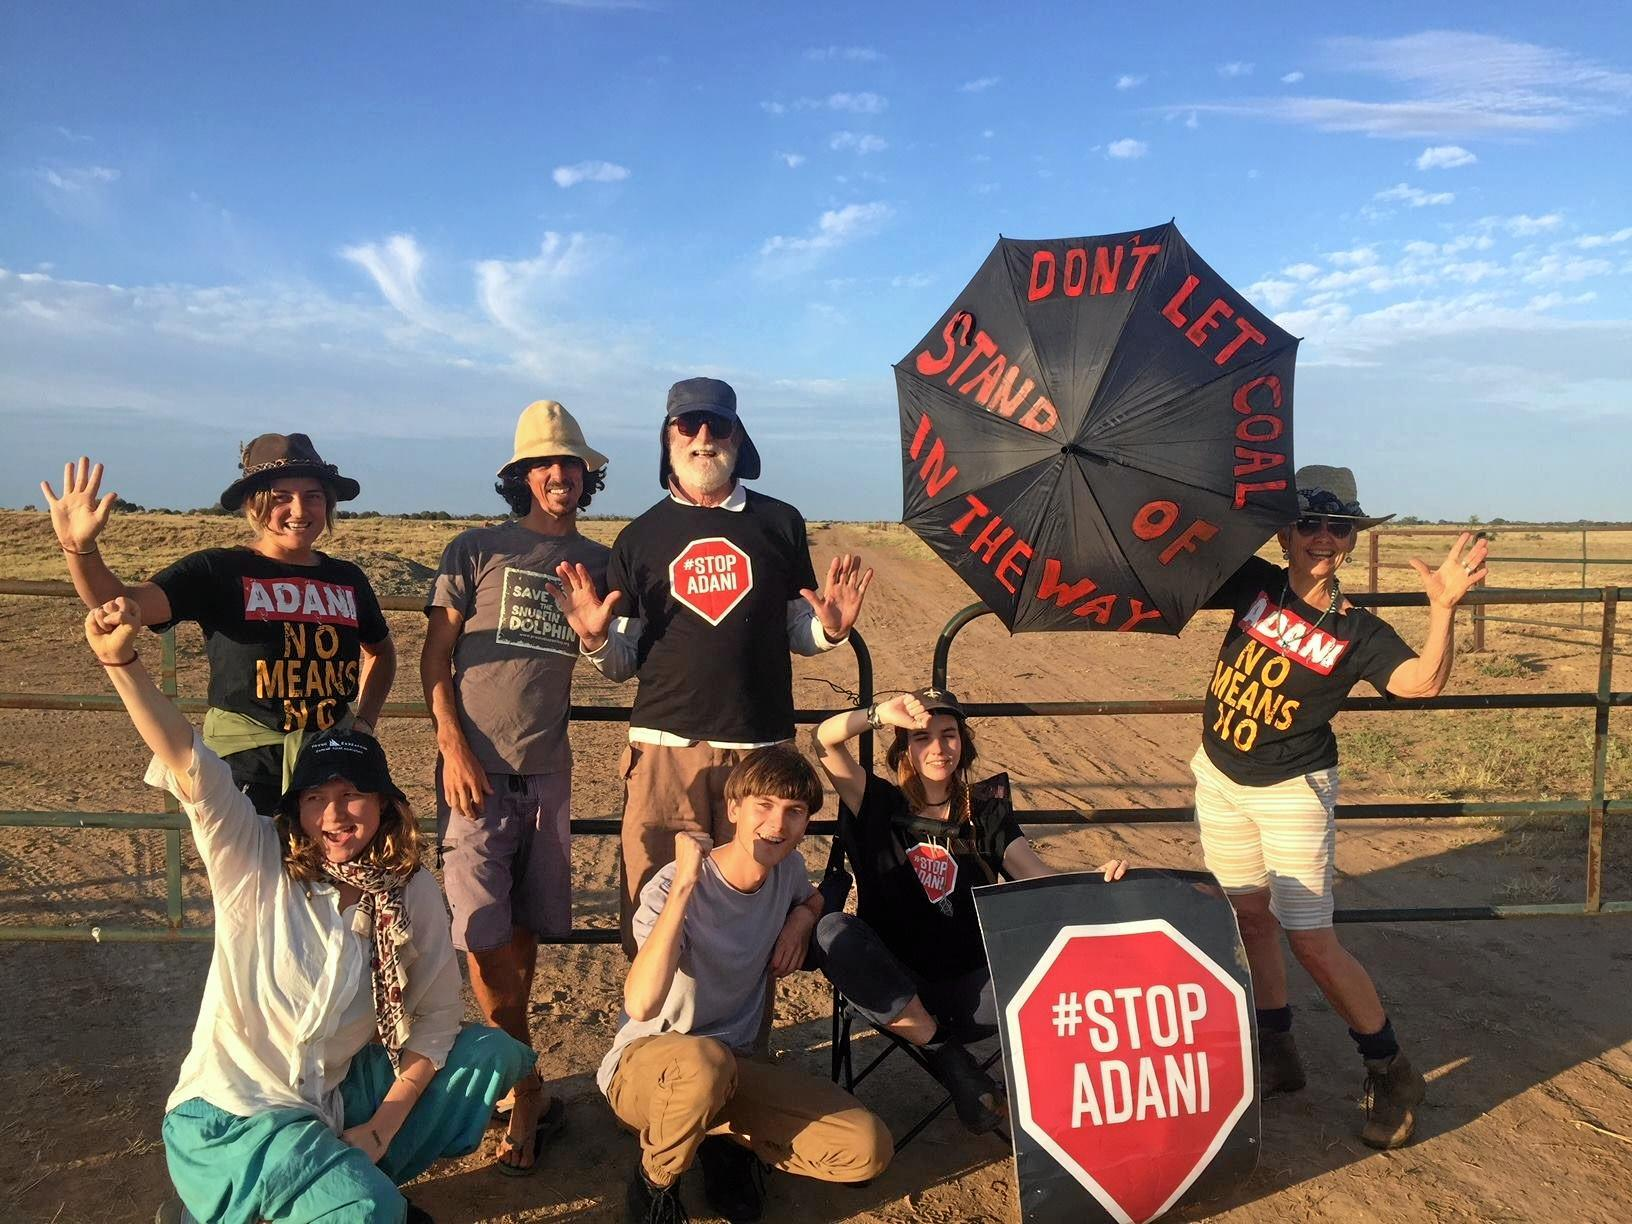 CHILDISH TANTRUM: Front Line Action on Coal (FLAC)  at an anti-Adani protest. Senator Matt Canavan has likened the anti-coal mine activists to frustrated children throwing the teddy out of the baby cot when they don't get their own way.